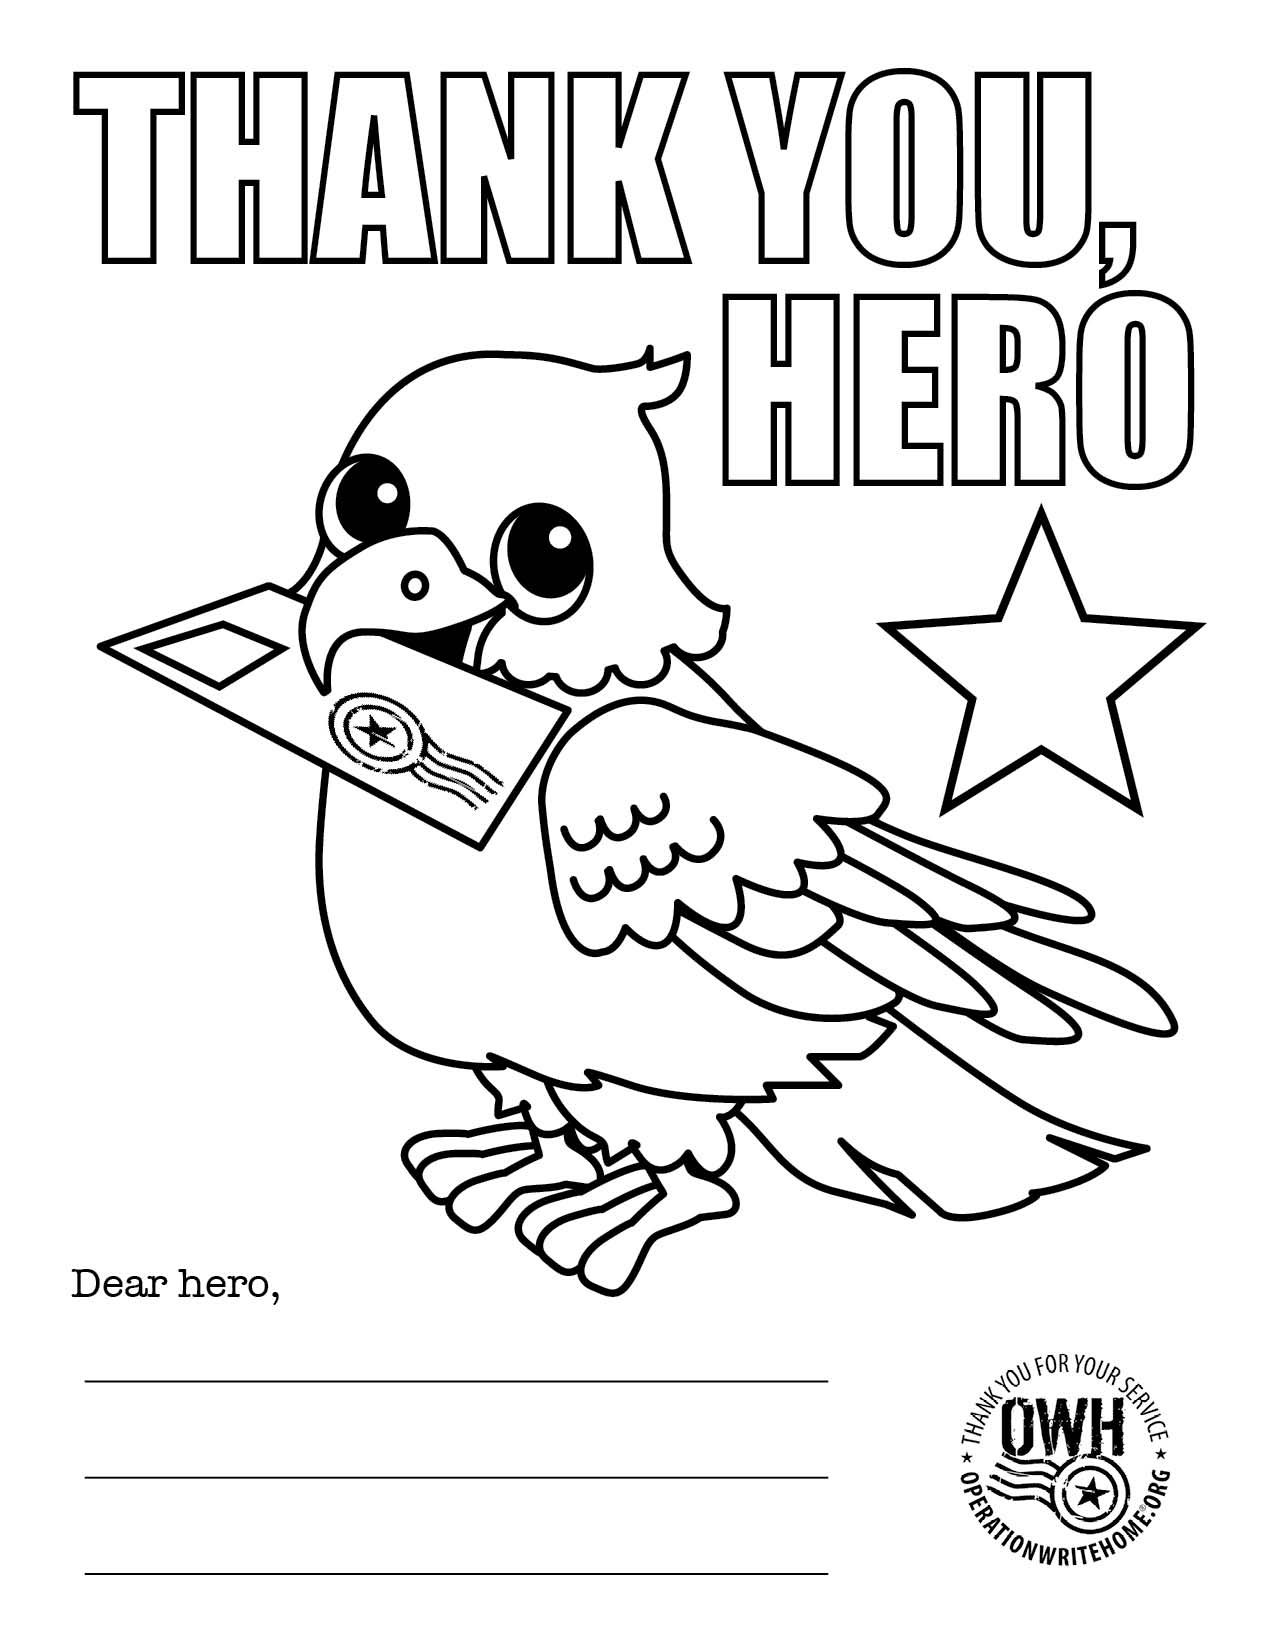 Coloring pages for Hero Mail | Operation Write Home | Kid Stuff ...